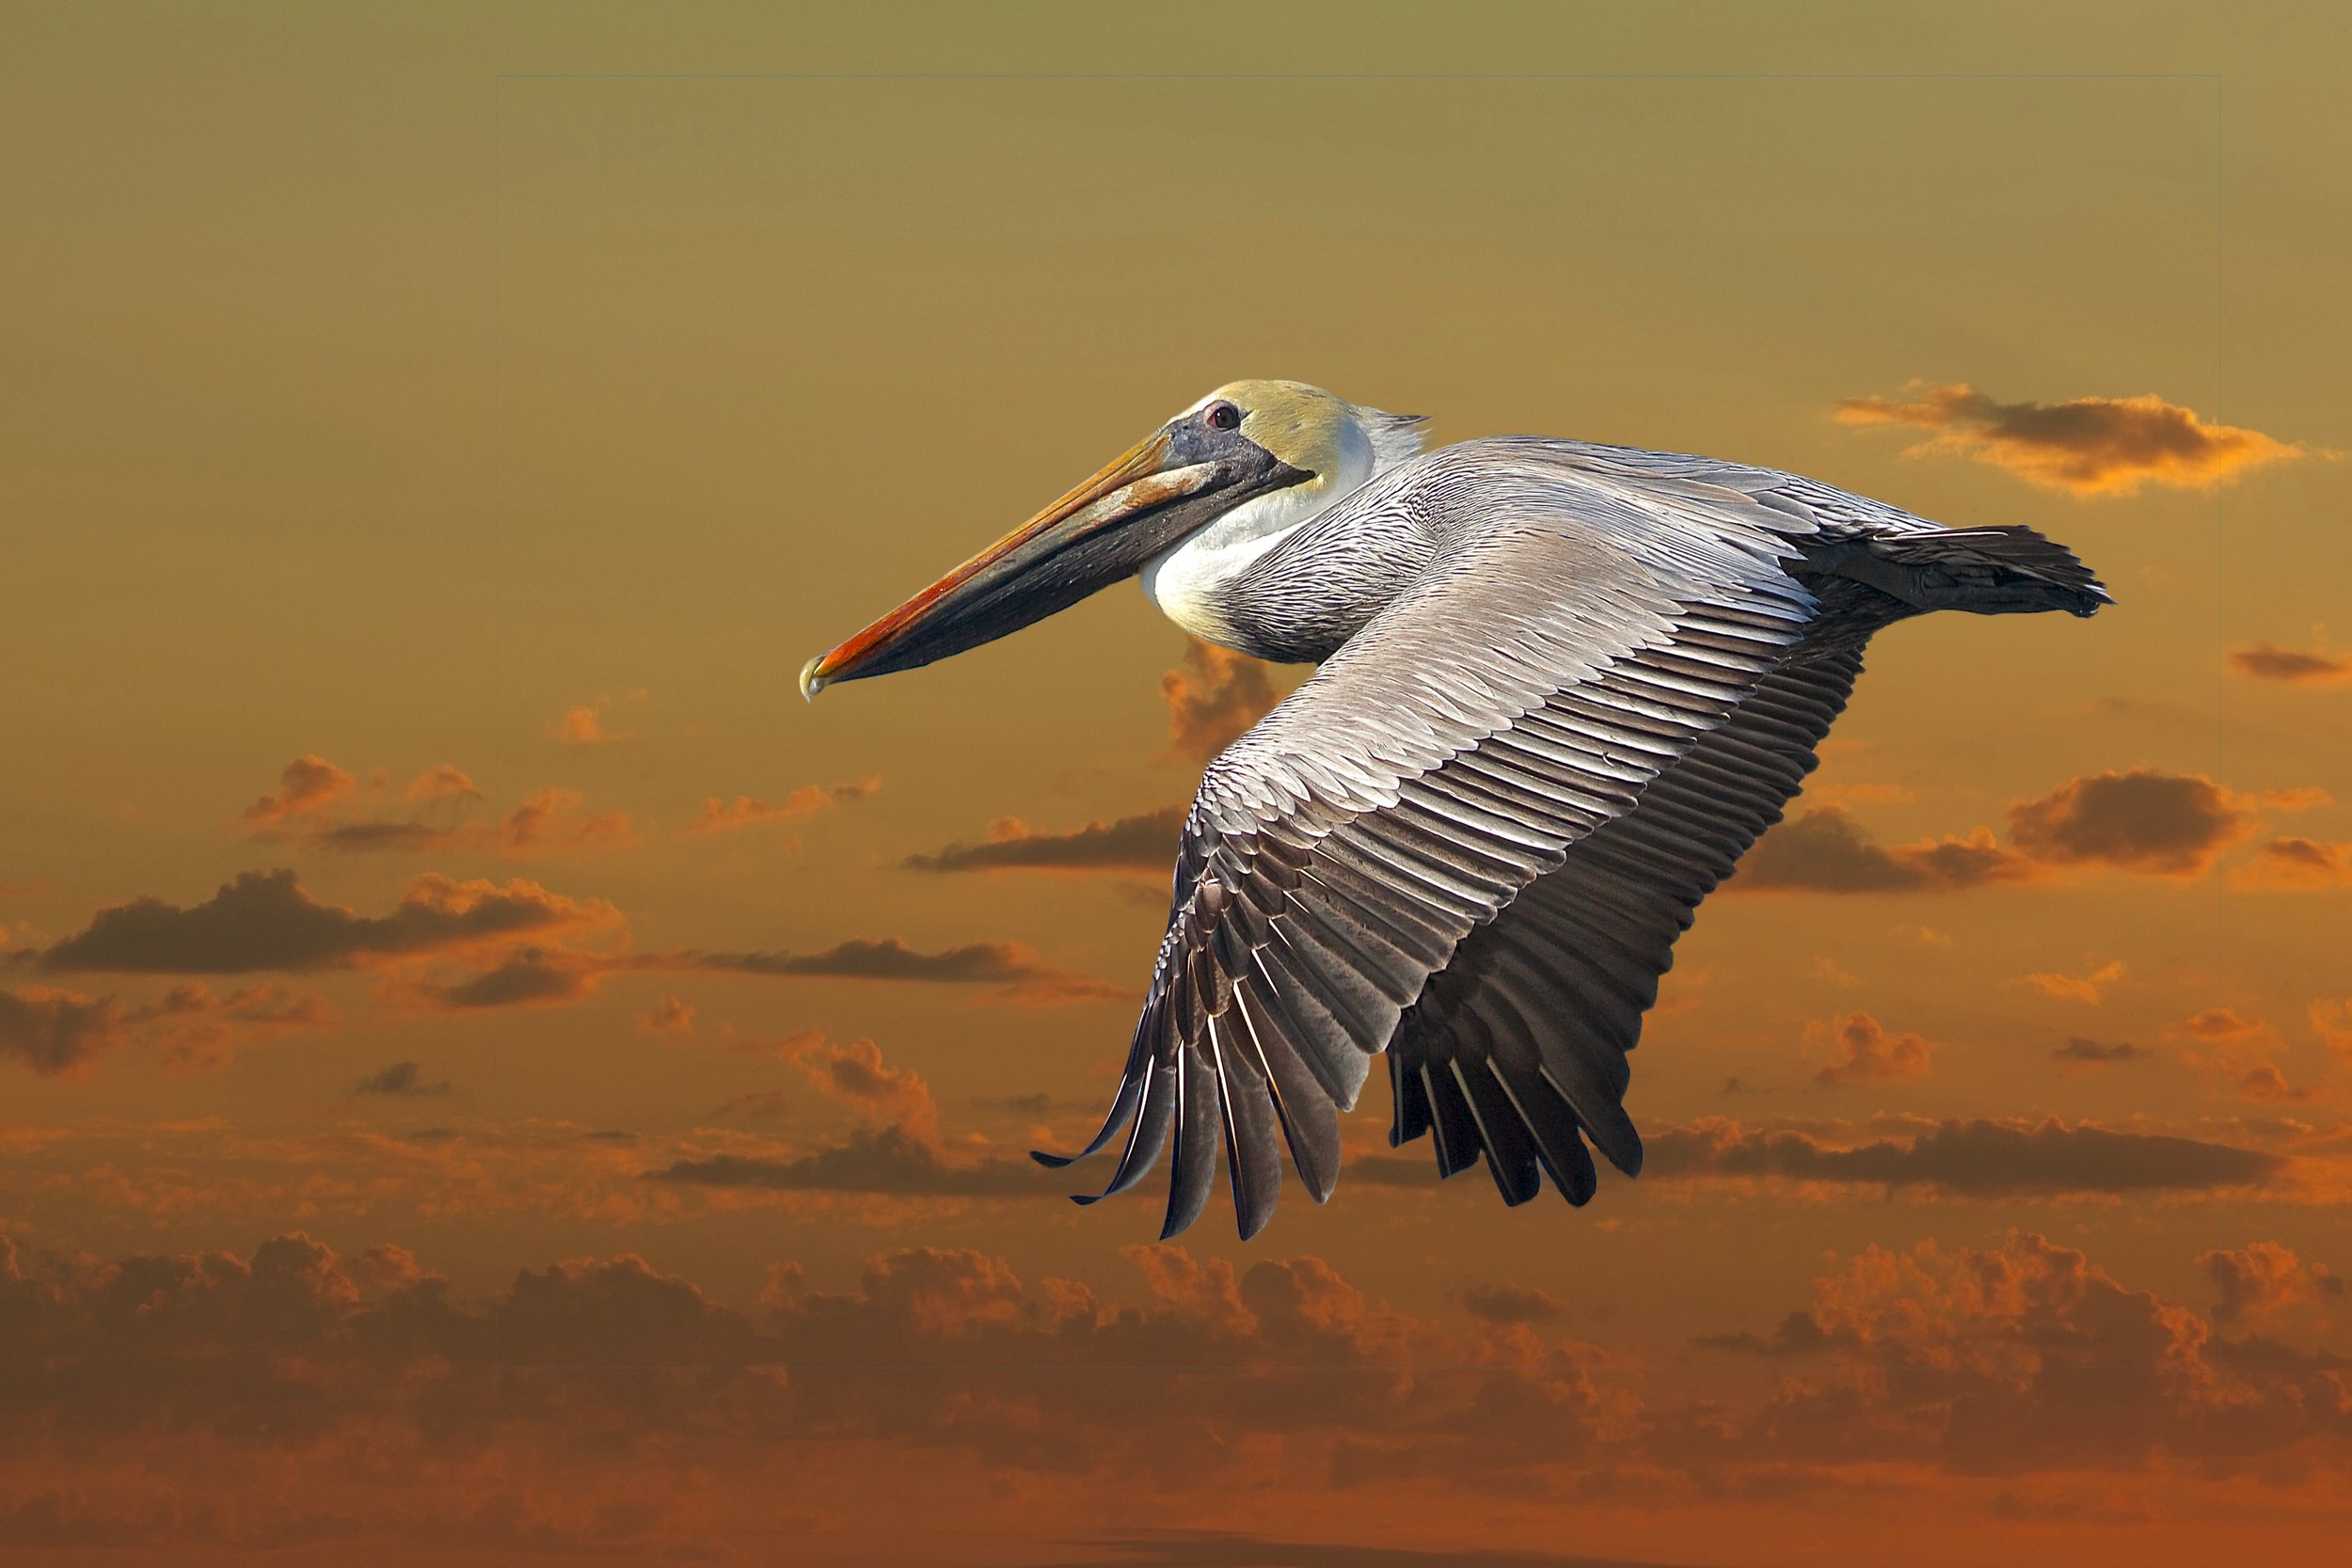 For this one I took a photo of a Pelican against a clear blue sky and replaced the blue with another photo of a sunset for a completely different effect.